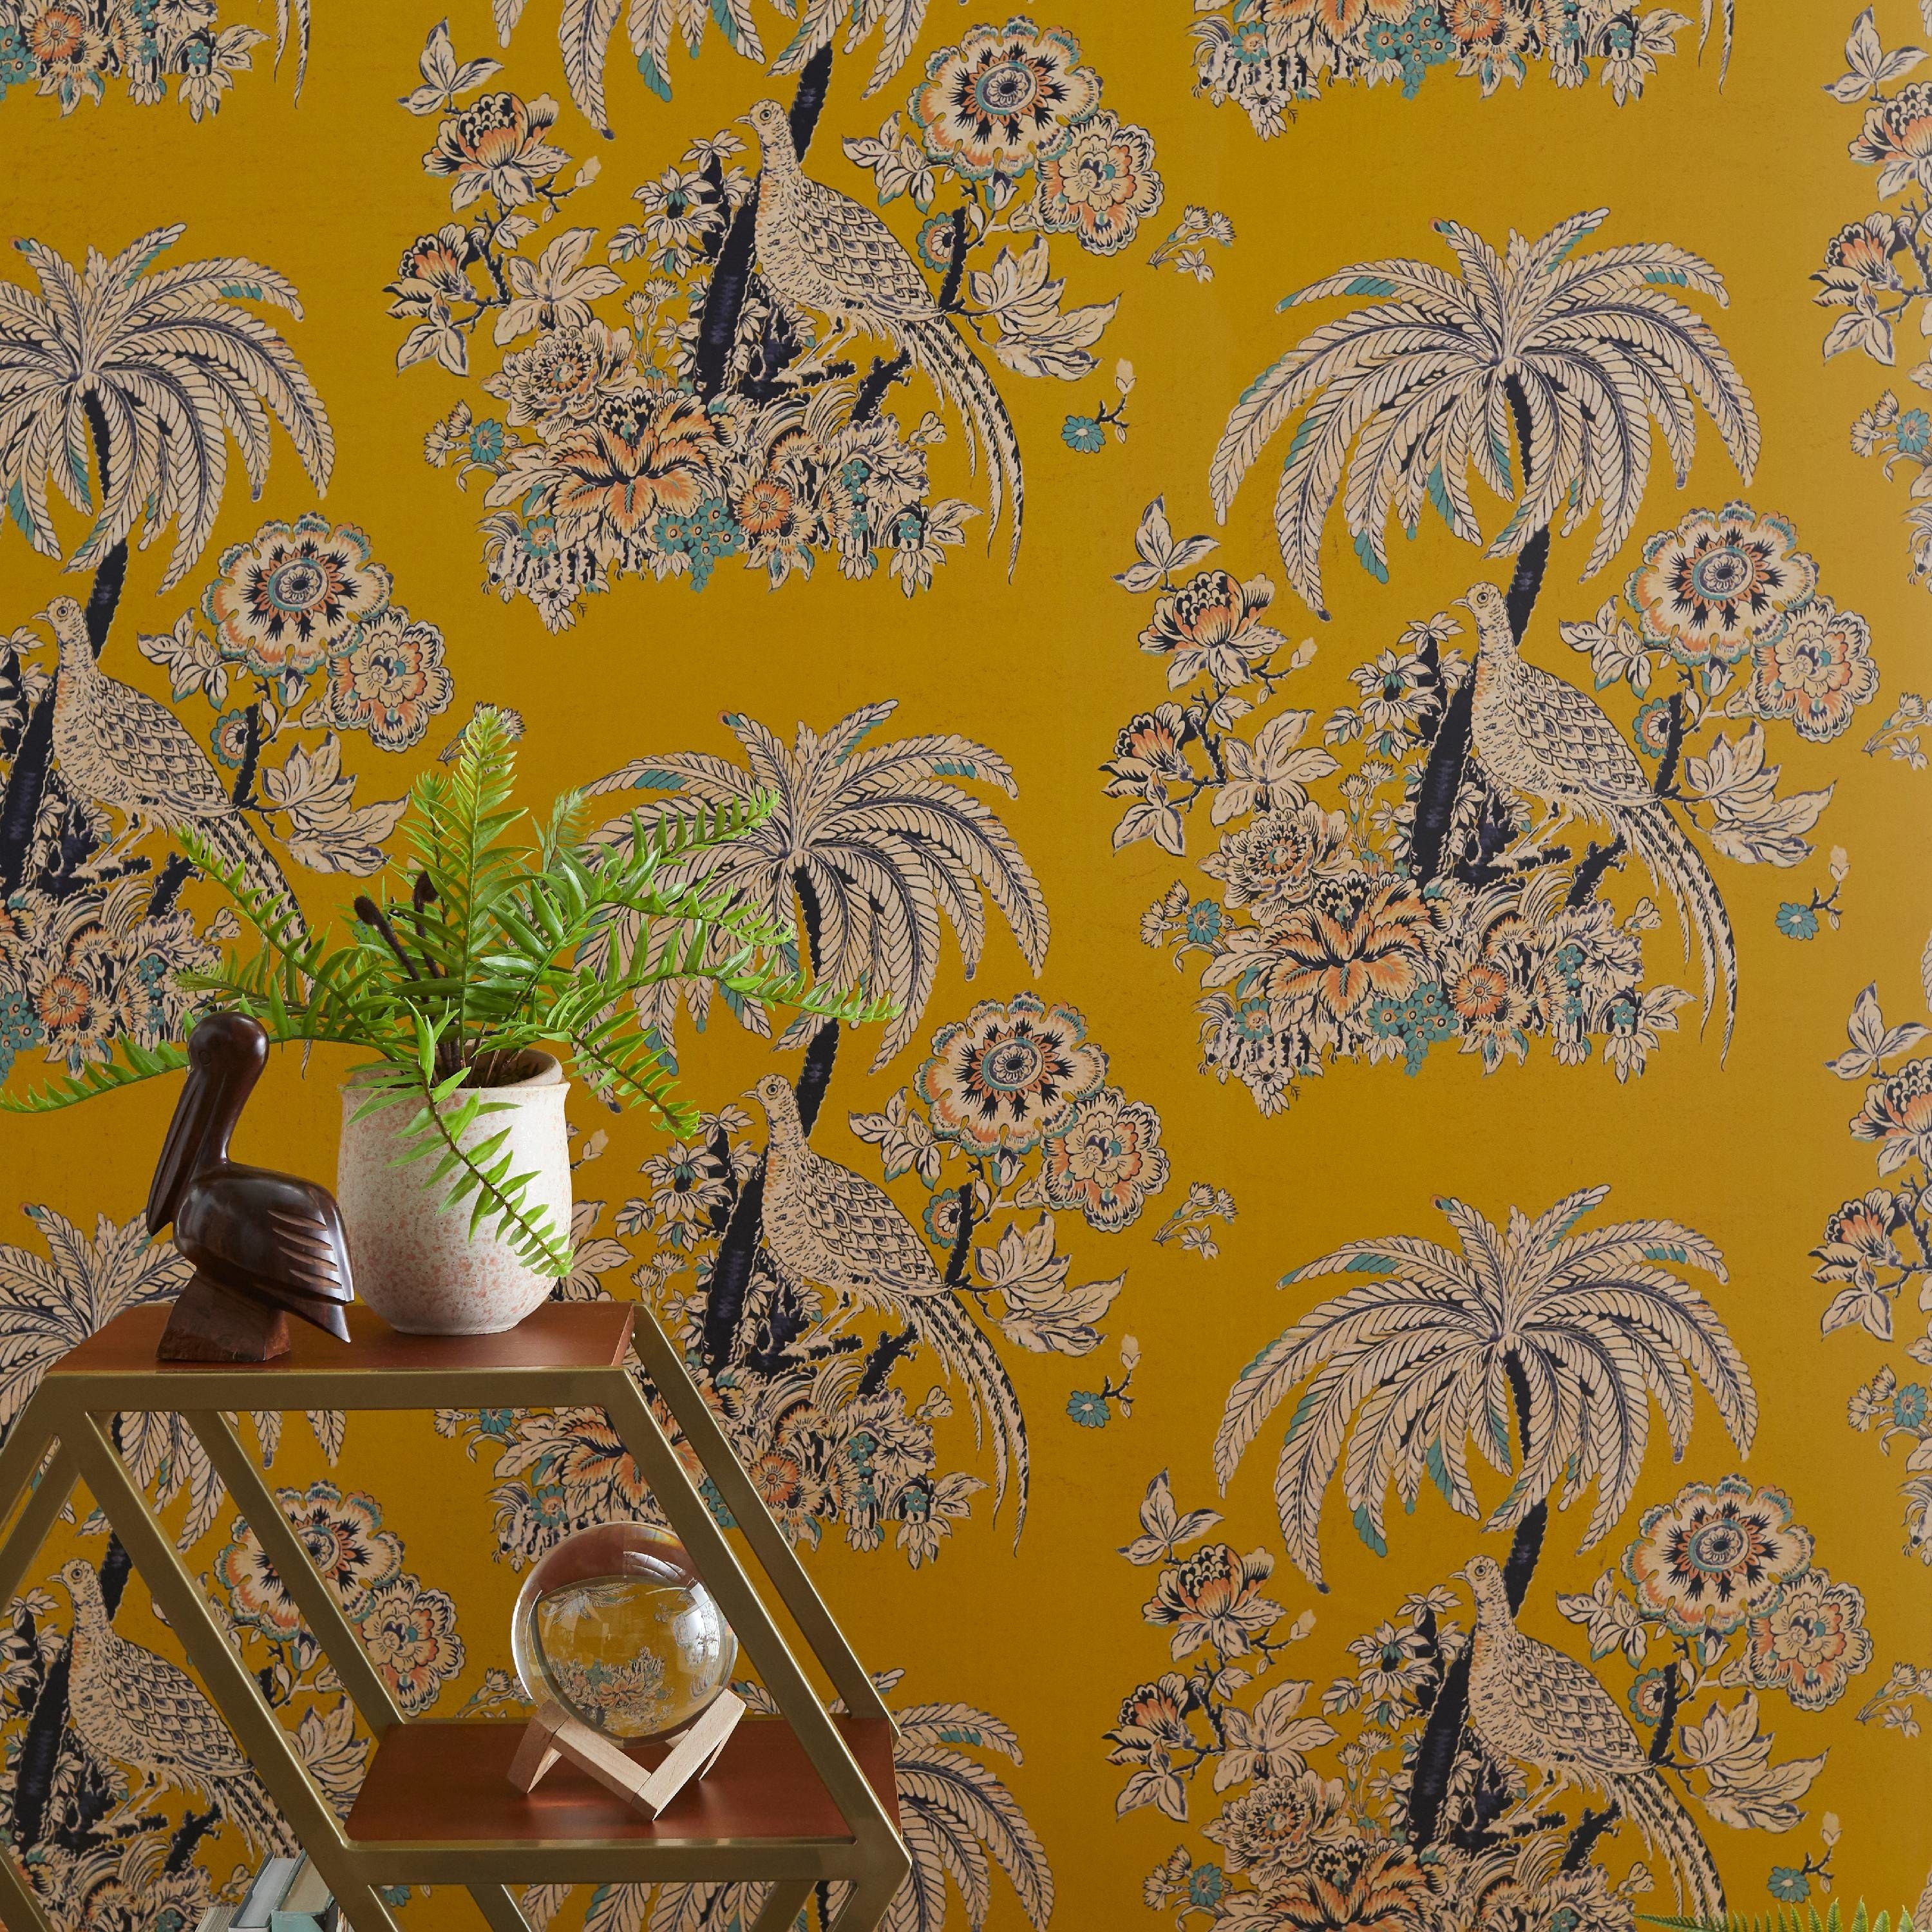 A gold-yellow wallpaper with a repeating image of a peacock by a palm tree surrounded by flowers